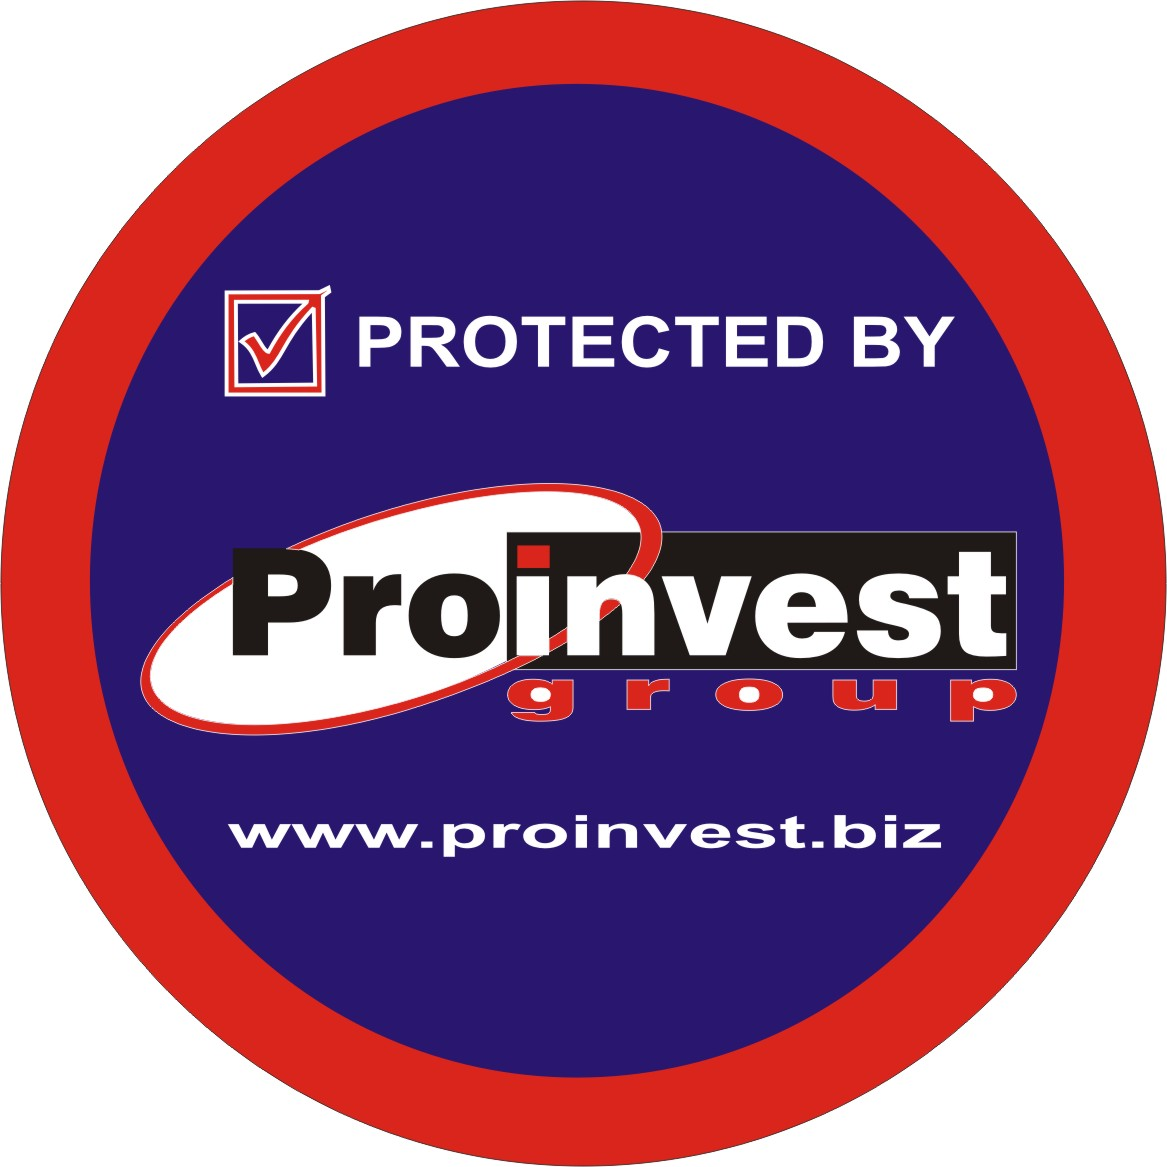 Proinwest Group